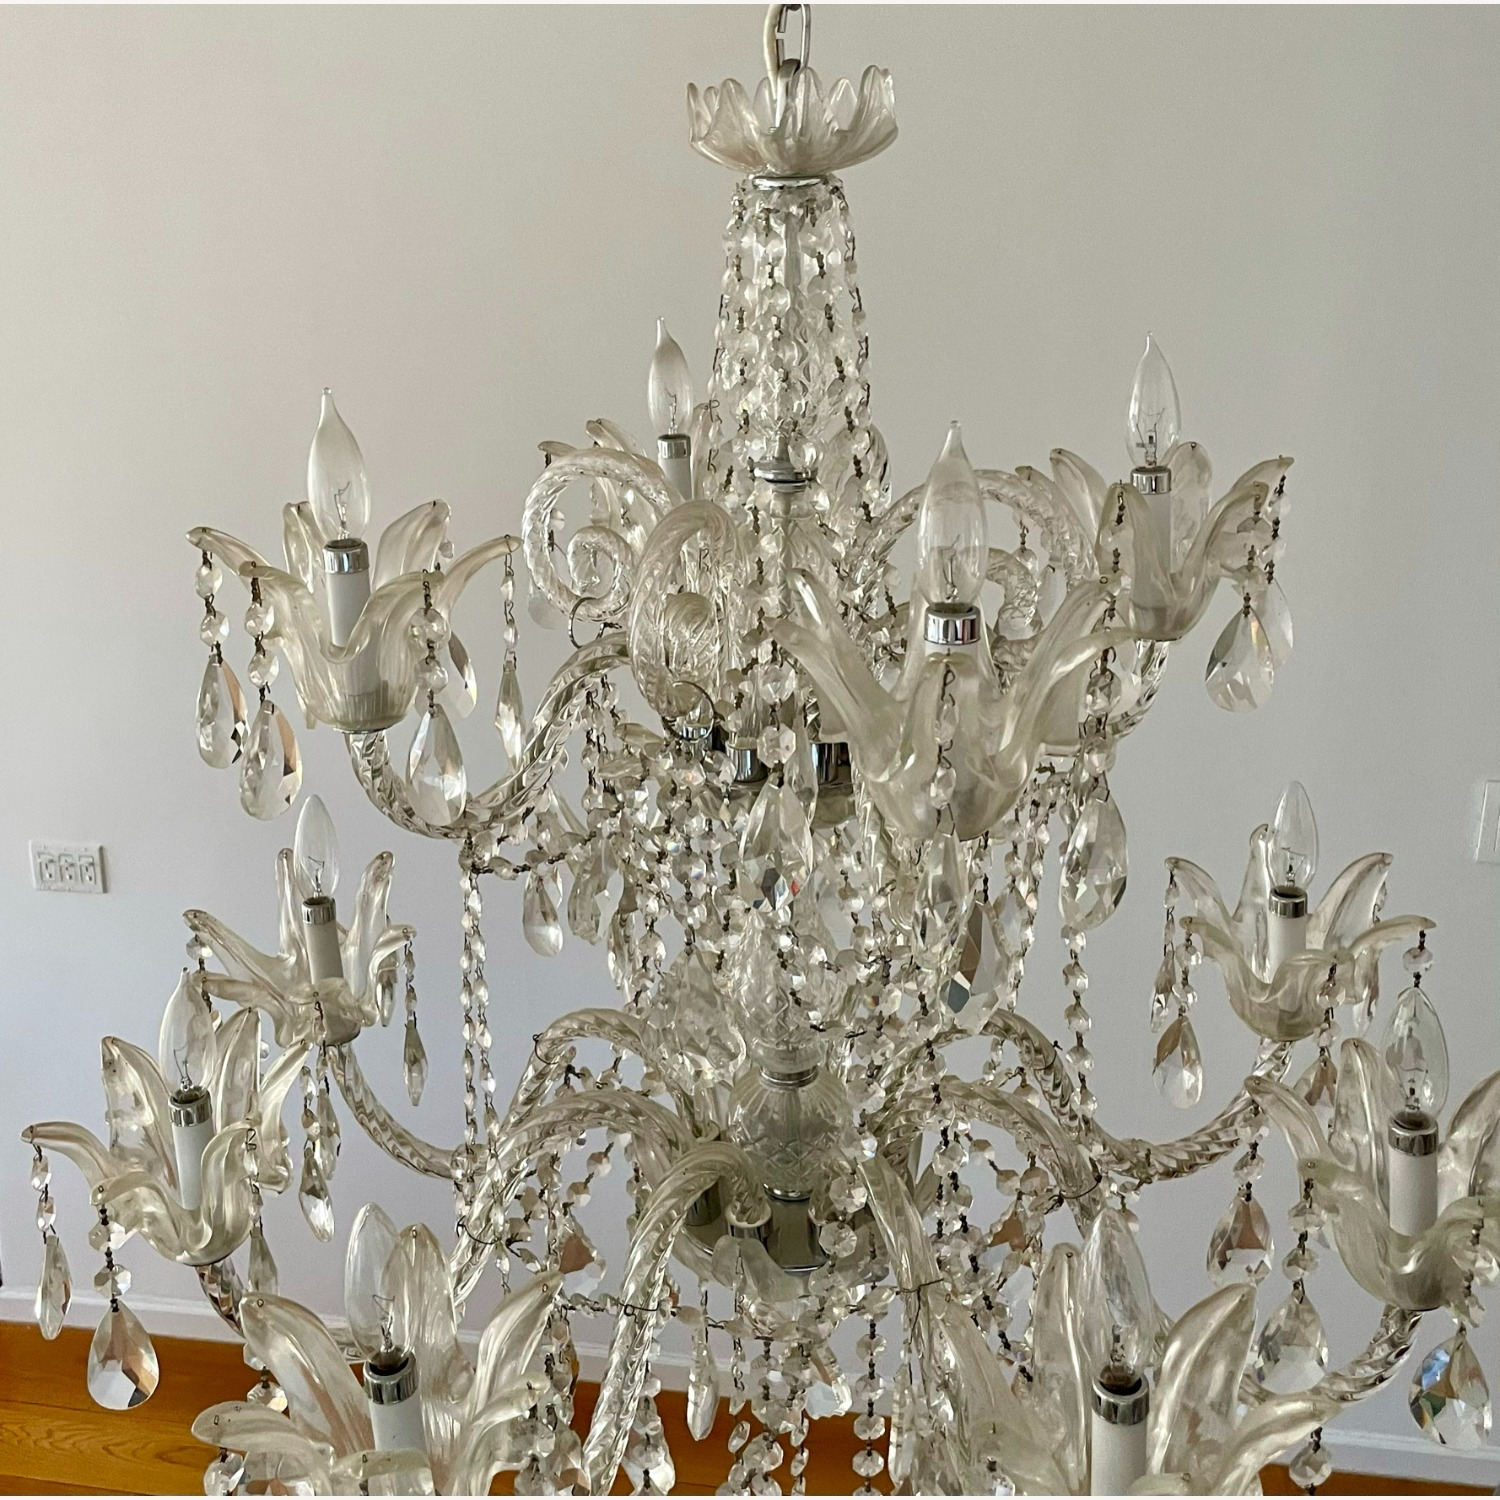 X-Large 12 Bulb Crystal 2-Tier Chandelier - image-7